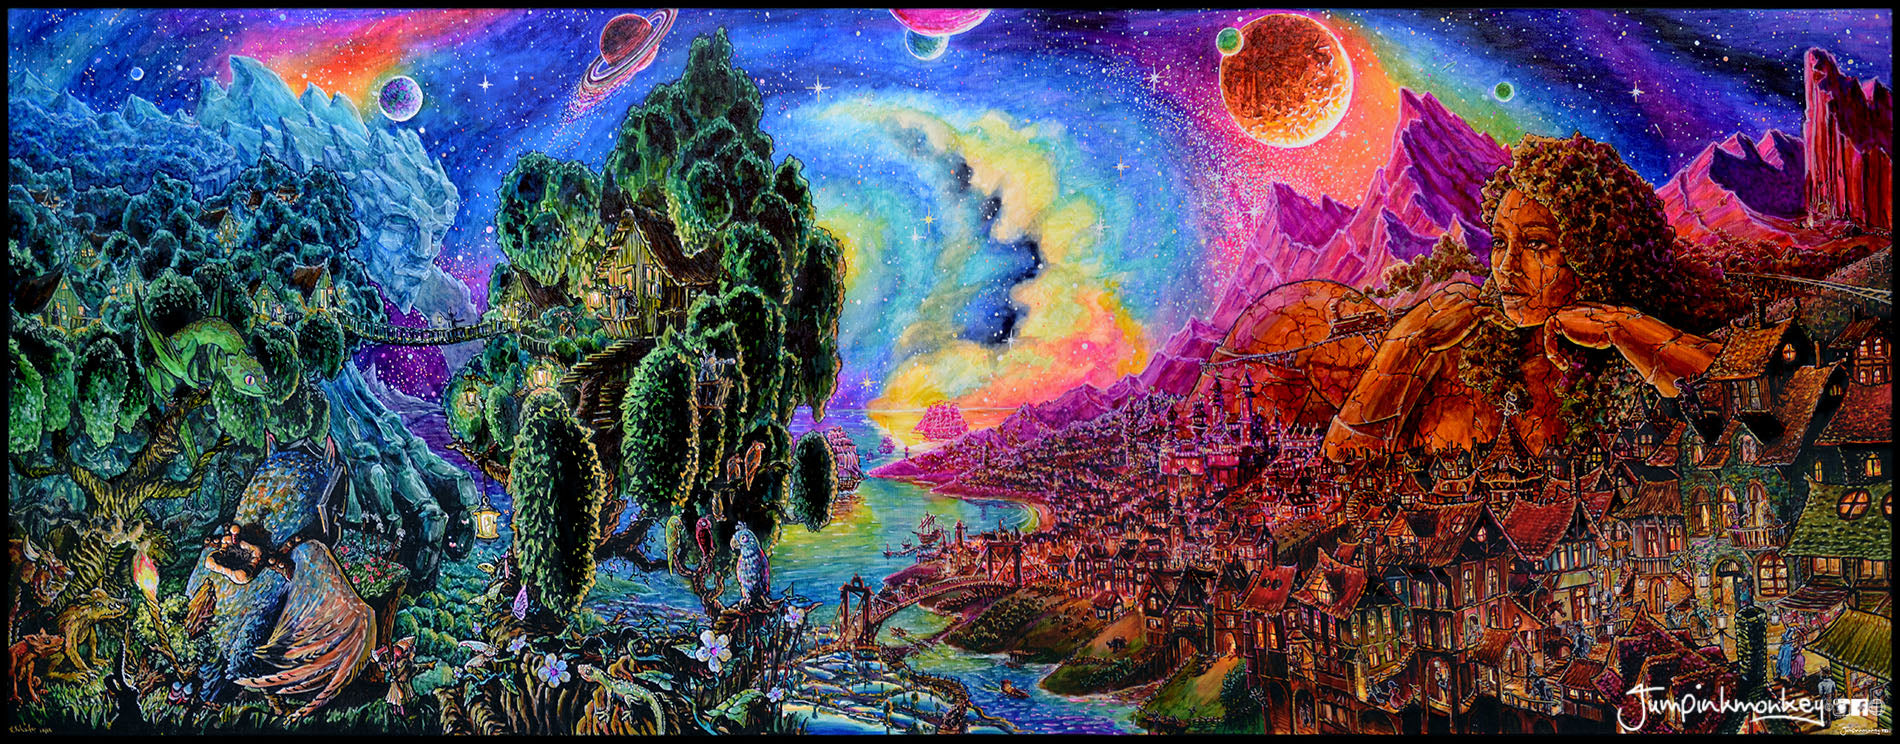 Colorful fantasy world with giants and magic creatures.